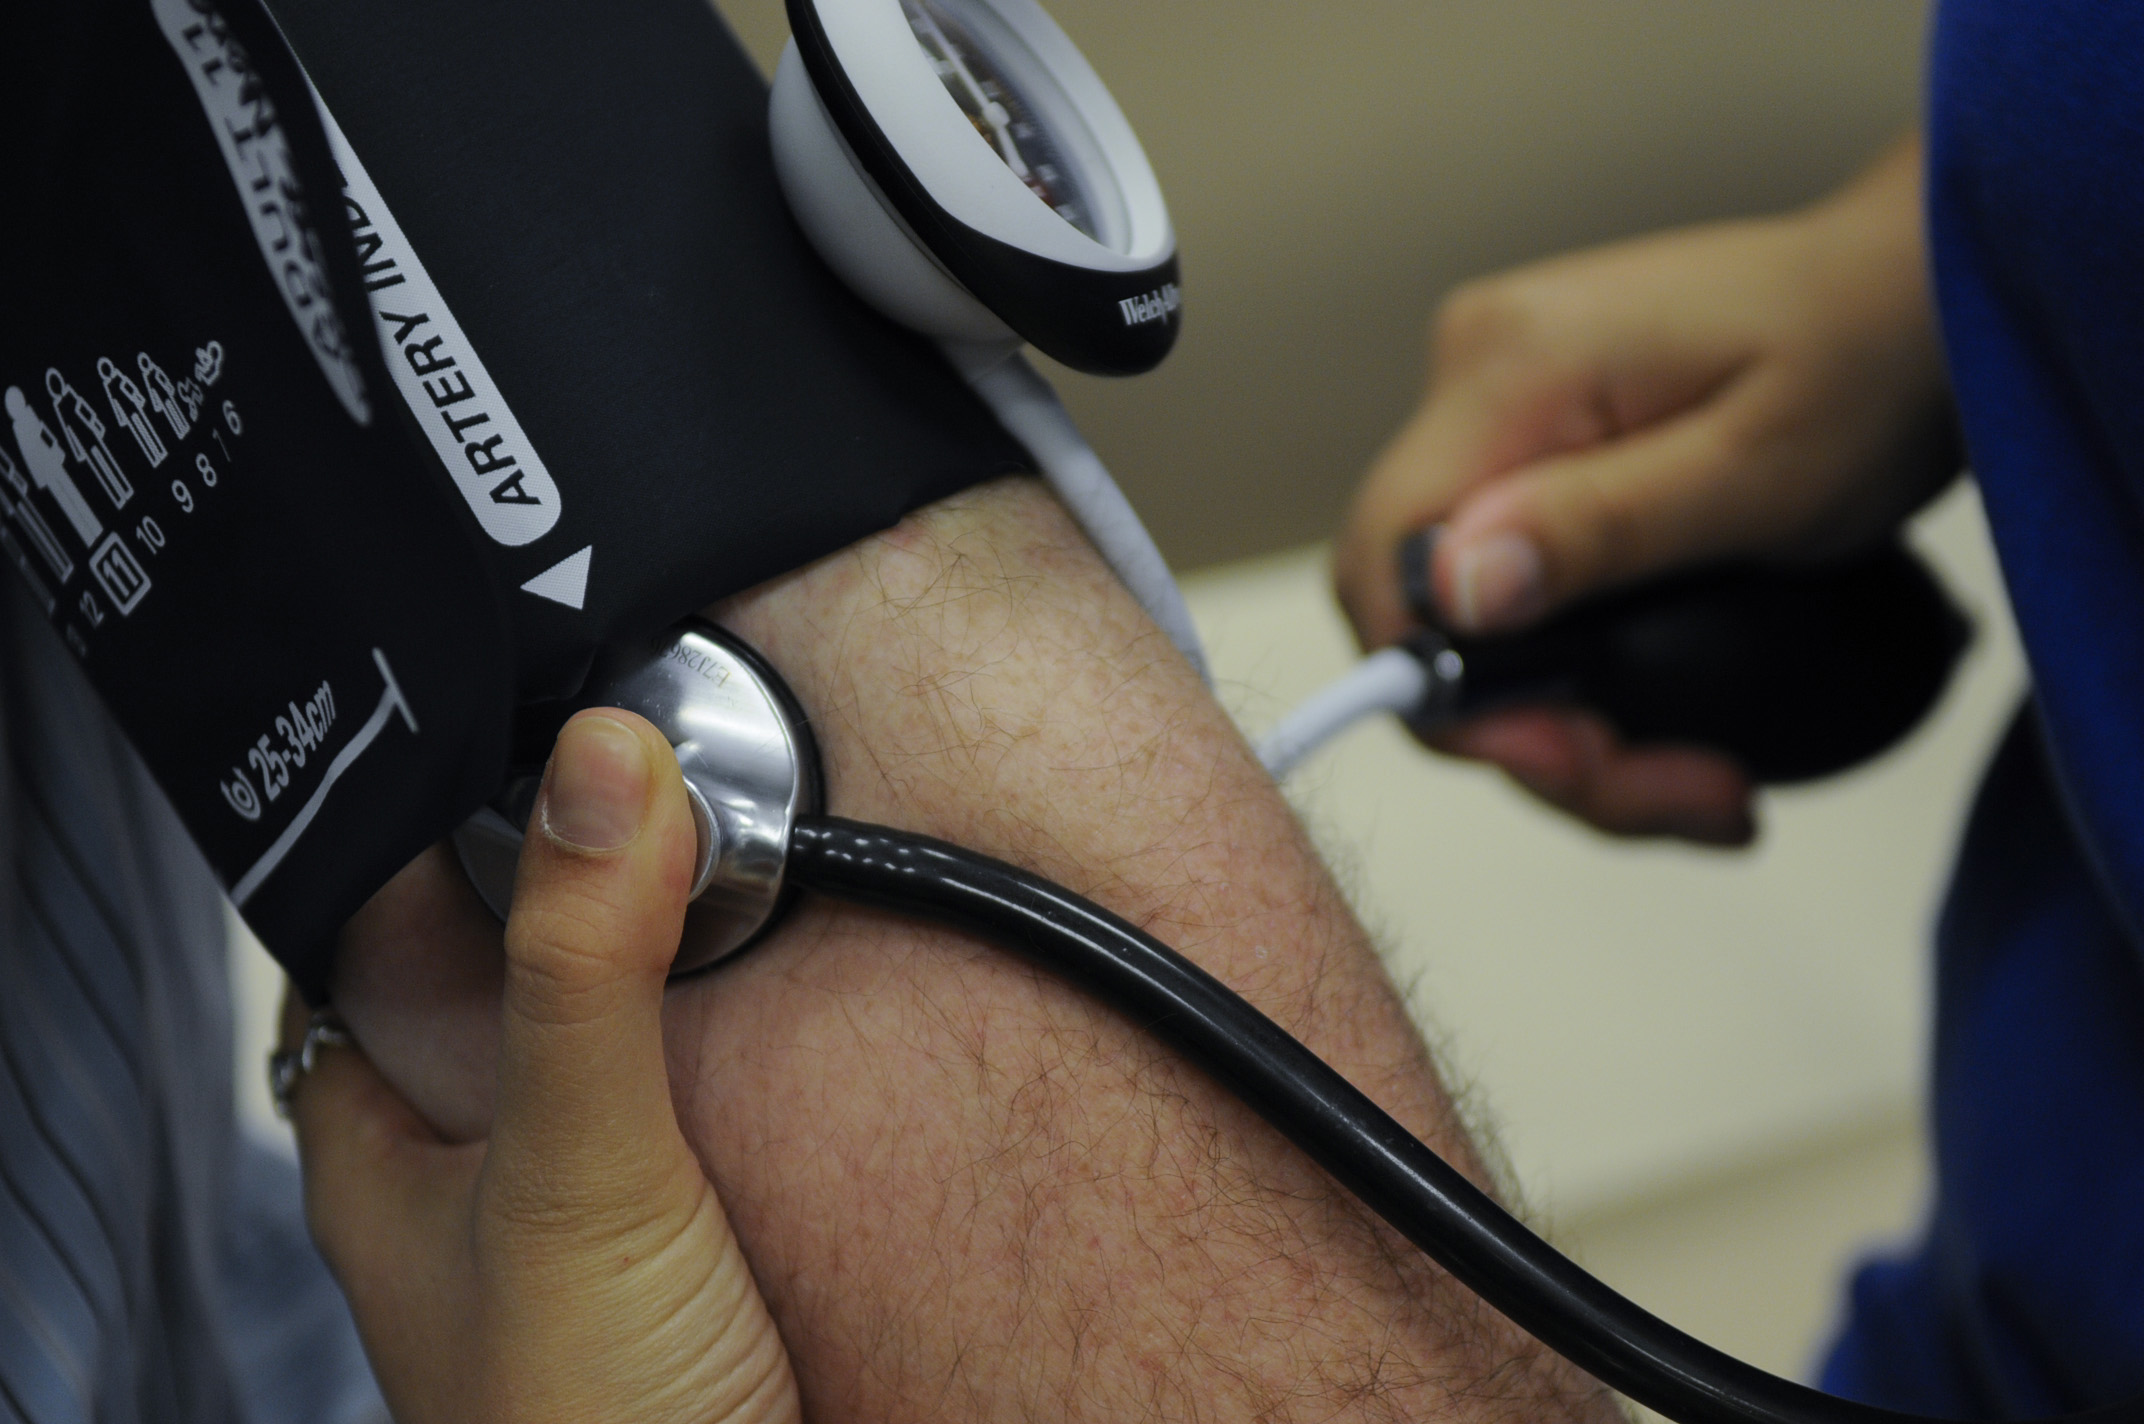 Blood pressure cuff around someone's arm and a stethoscope taking blood pressure